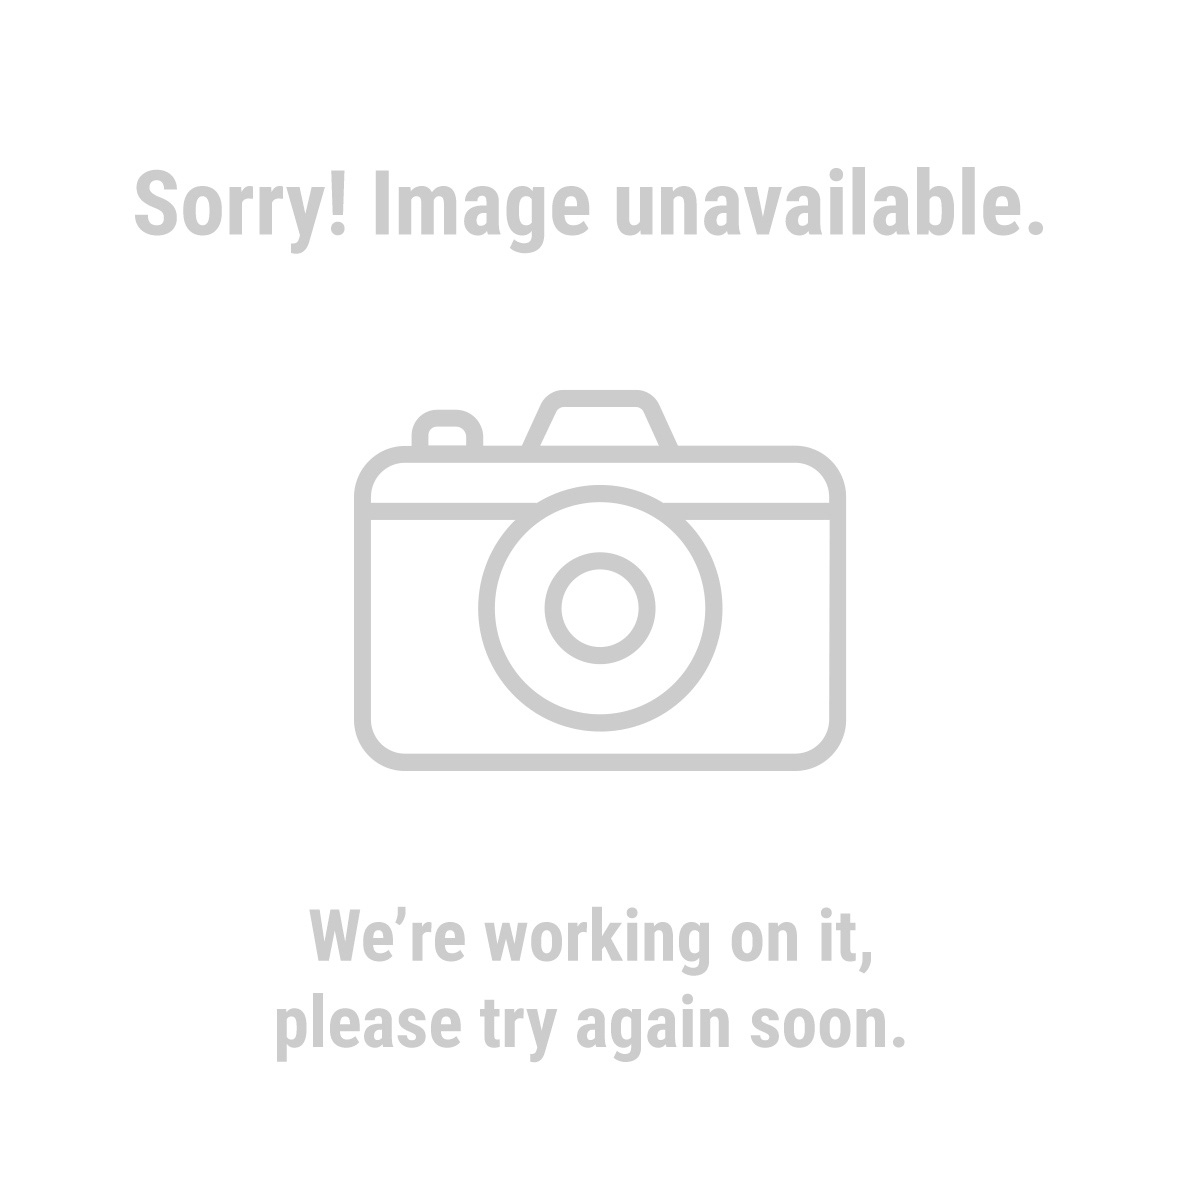 68754 1500 Watt Wood Stove Style Electric Heater